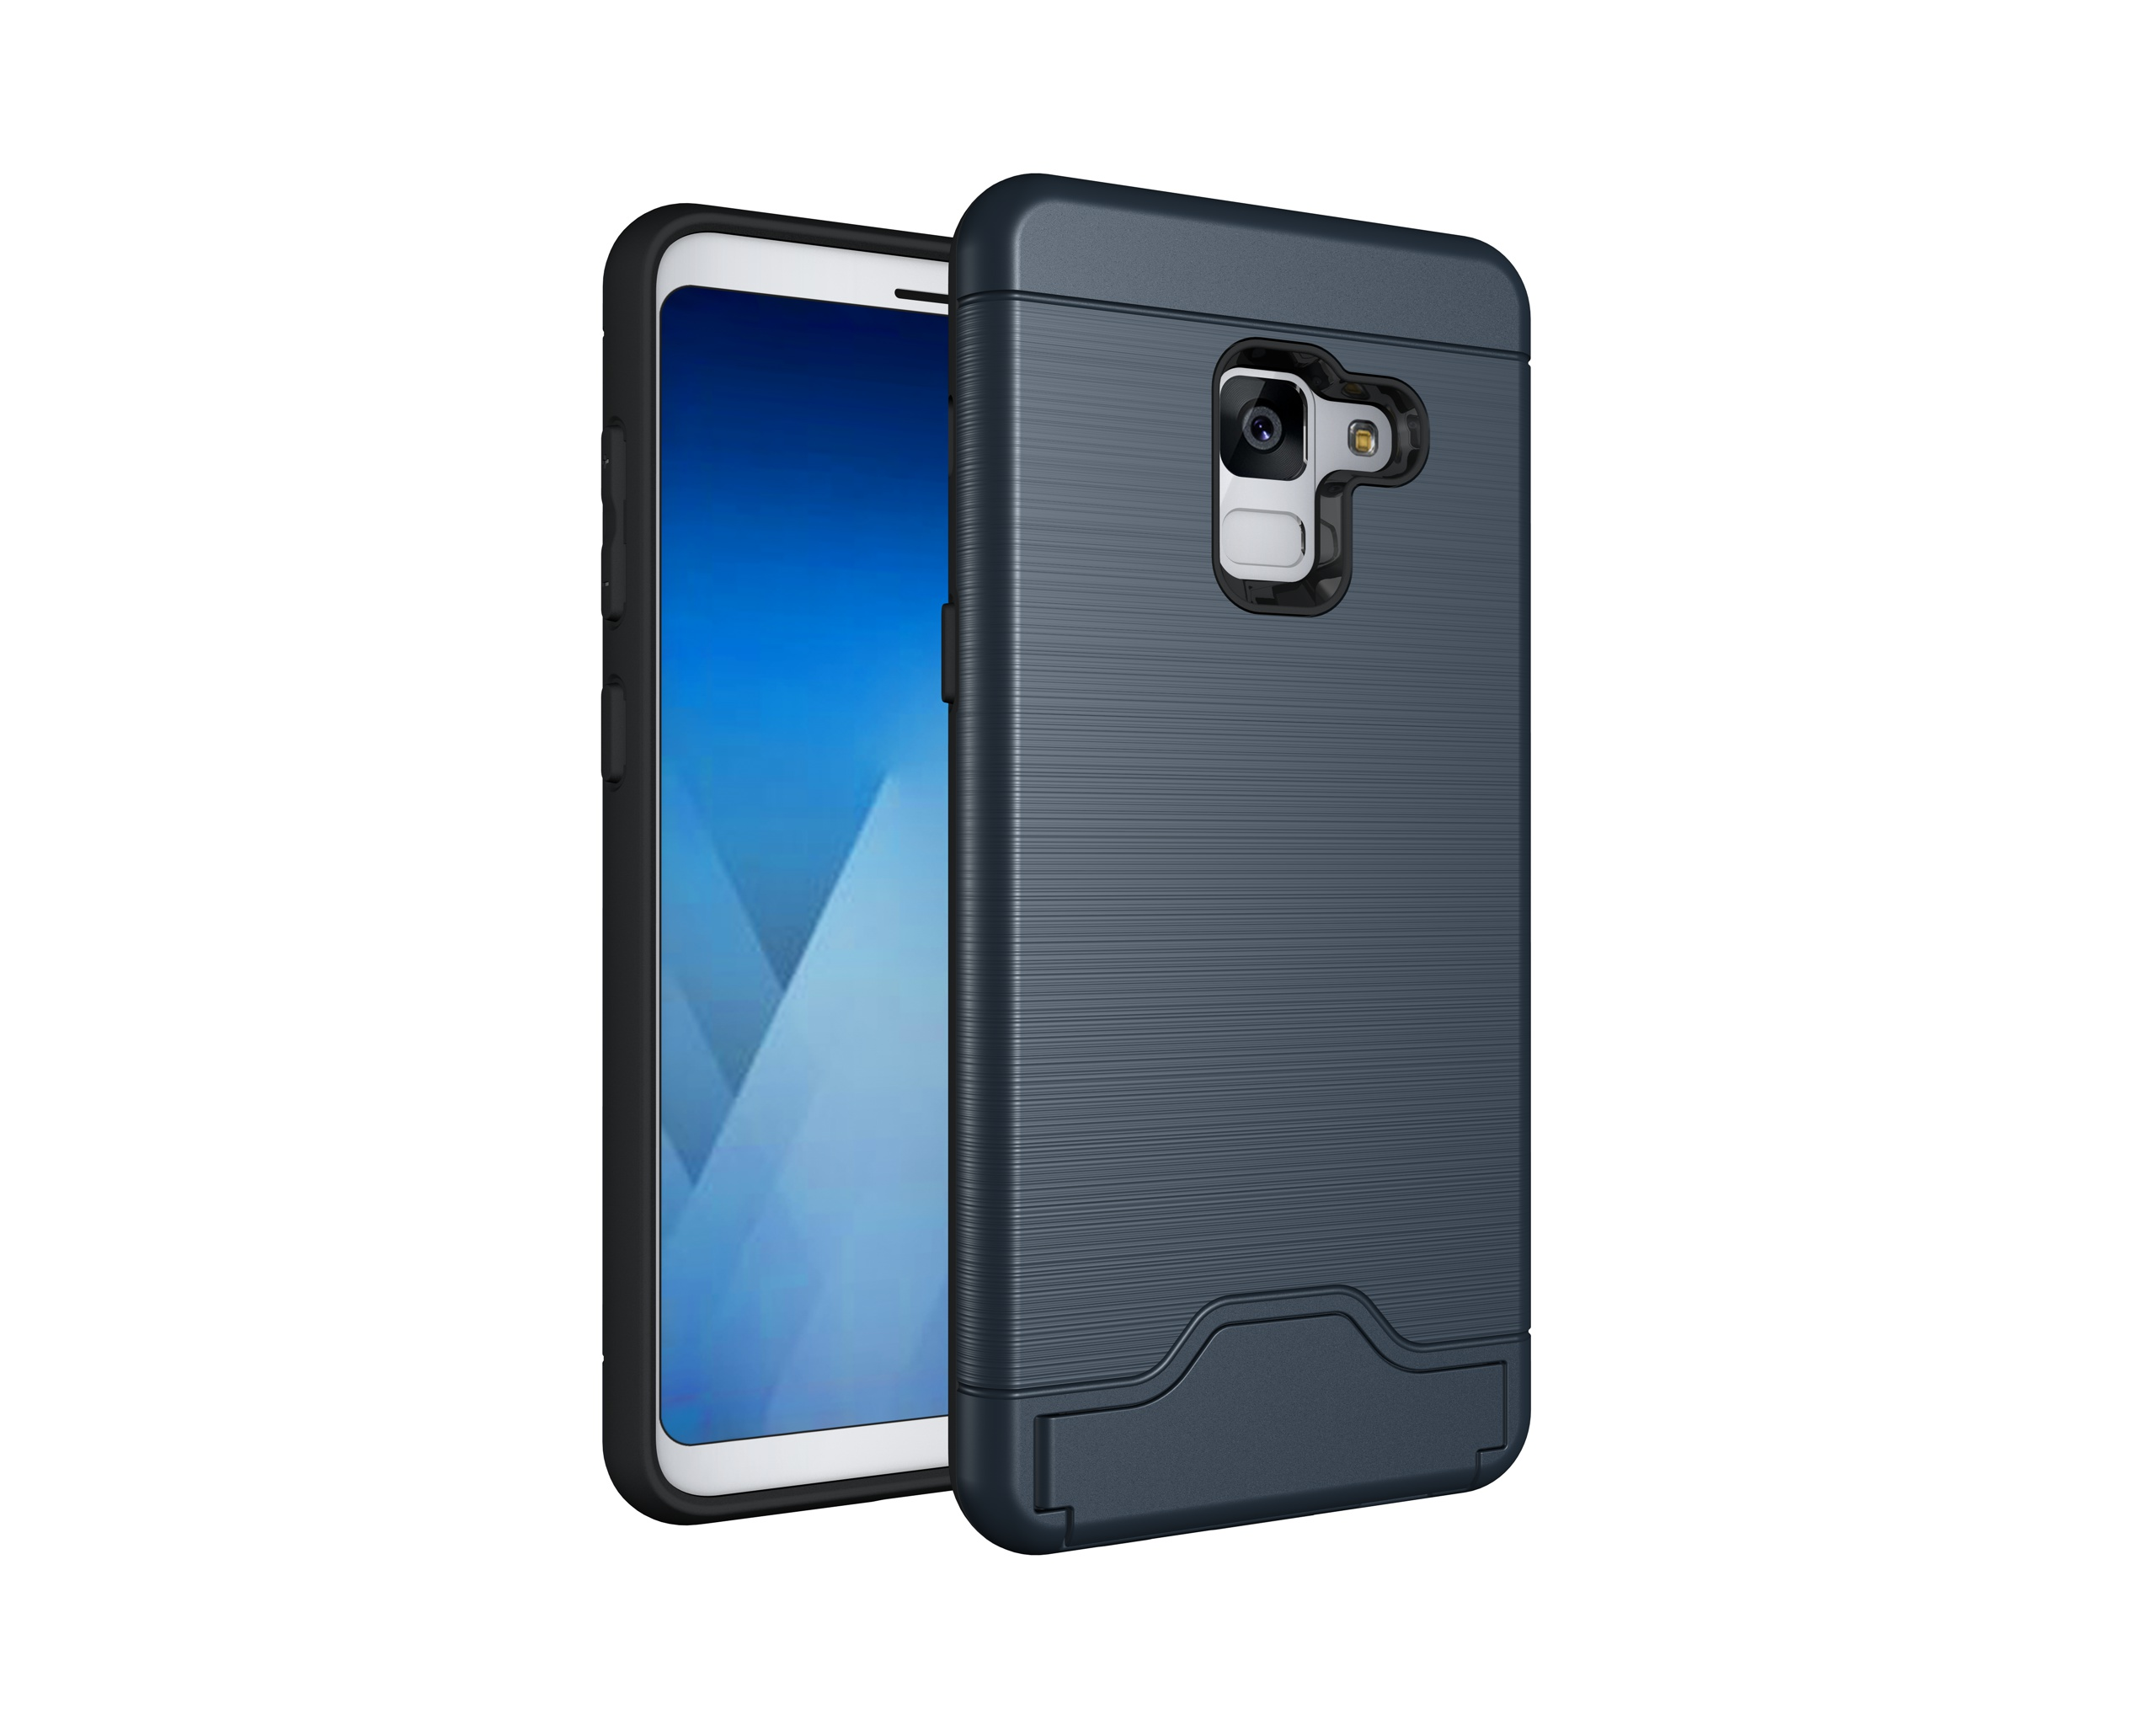 Exquisite 2-in-1 Phone Case Protective Cover with Card Holder for Samsung A8/A8 Plus